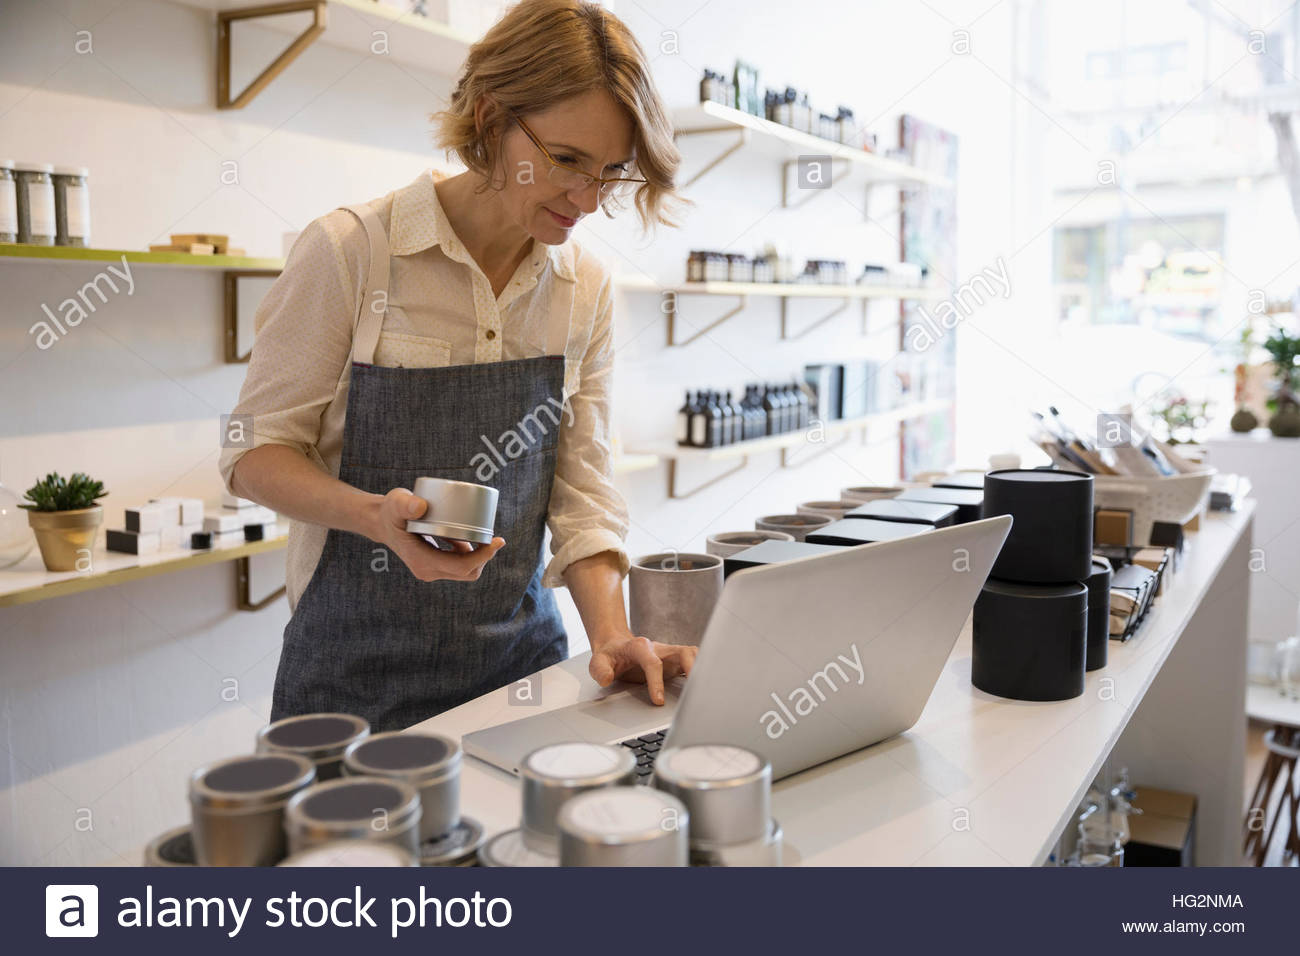 Female home fragrance shop owner working at laptop taking inventory - Stock Image